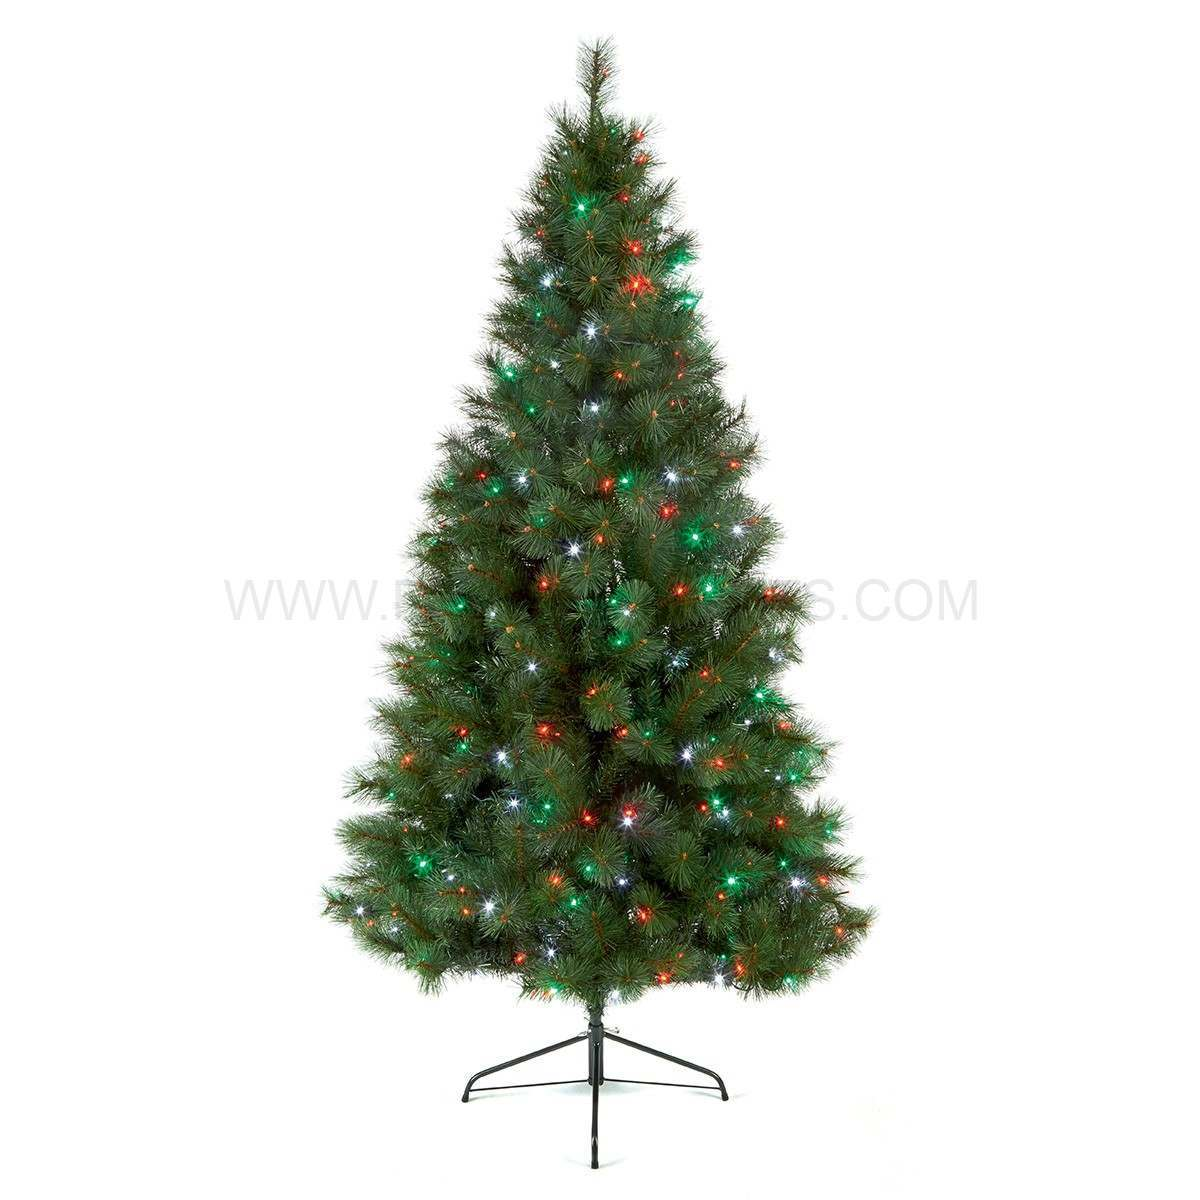 Outdoor christmas tree shop for cheap house decorations Outdoor christmas tree photos